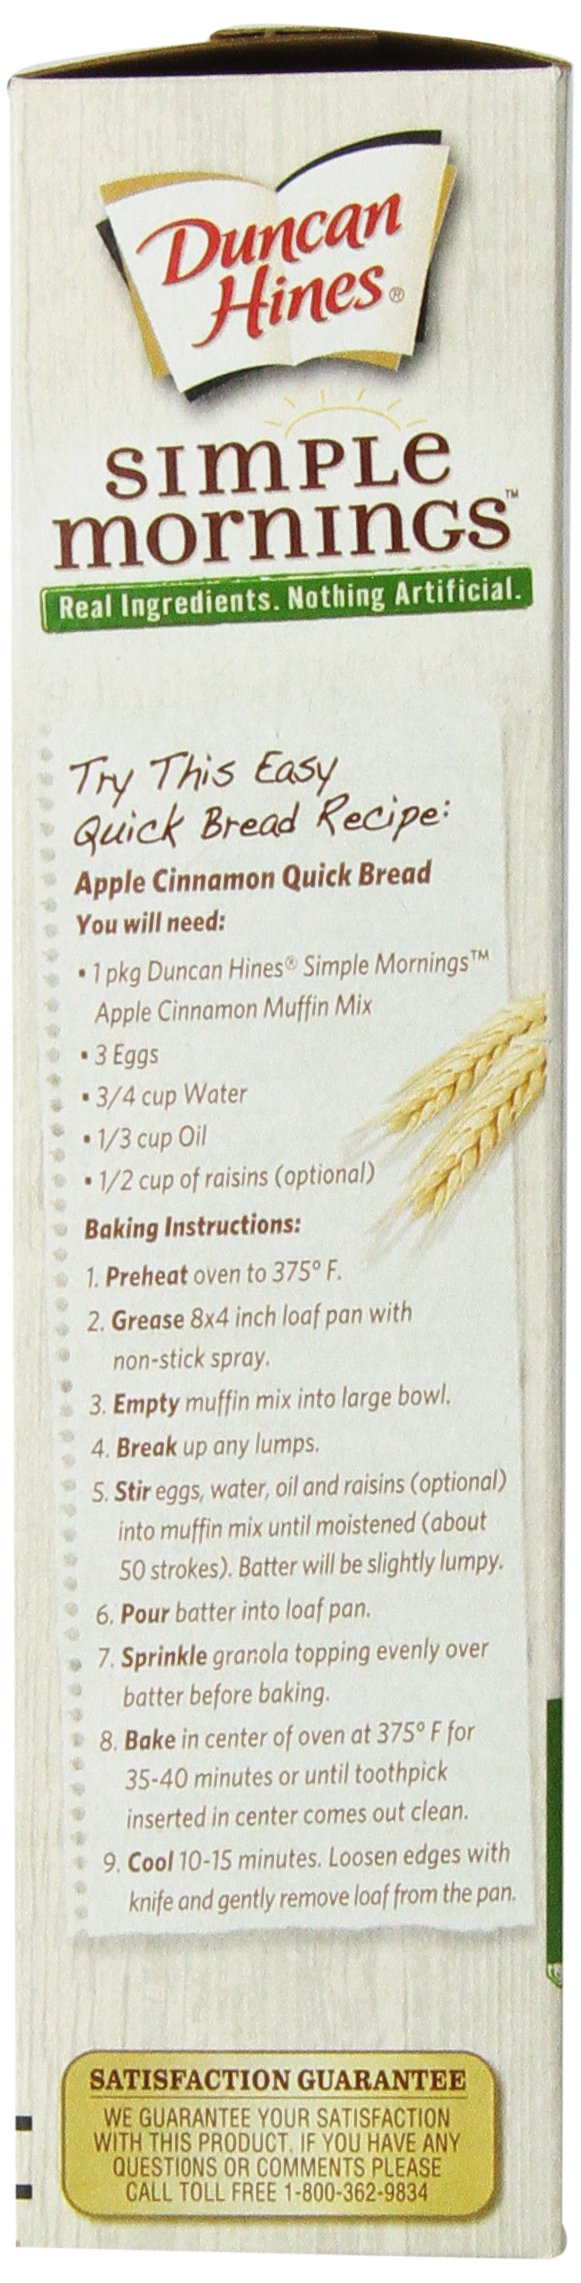 Duncan Hines Simple Mornings Oatmeal Muffin Mix, Apple Cinnamon, 16.1-Ounce (Pack of 12) by Duncan Hines (Image #6)